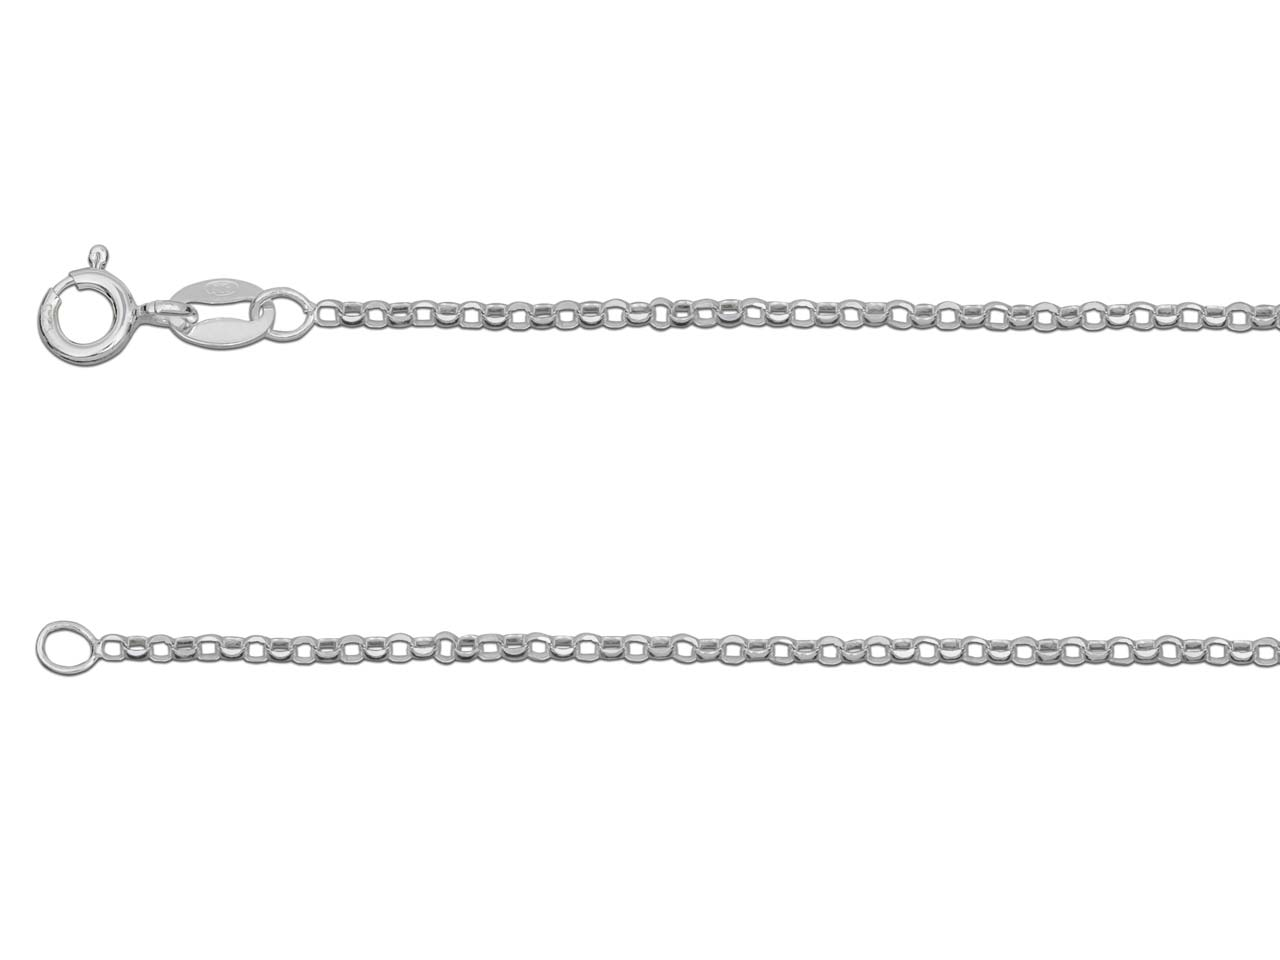 Silver sterling chain type Jaseron_diamantee